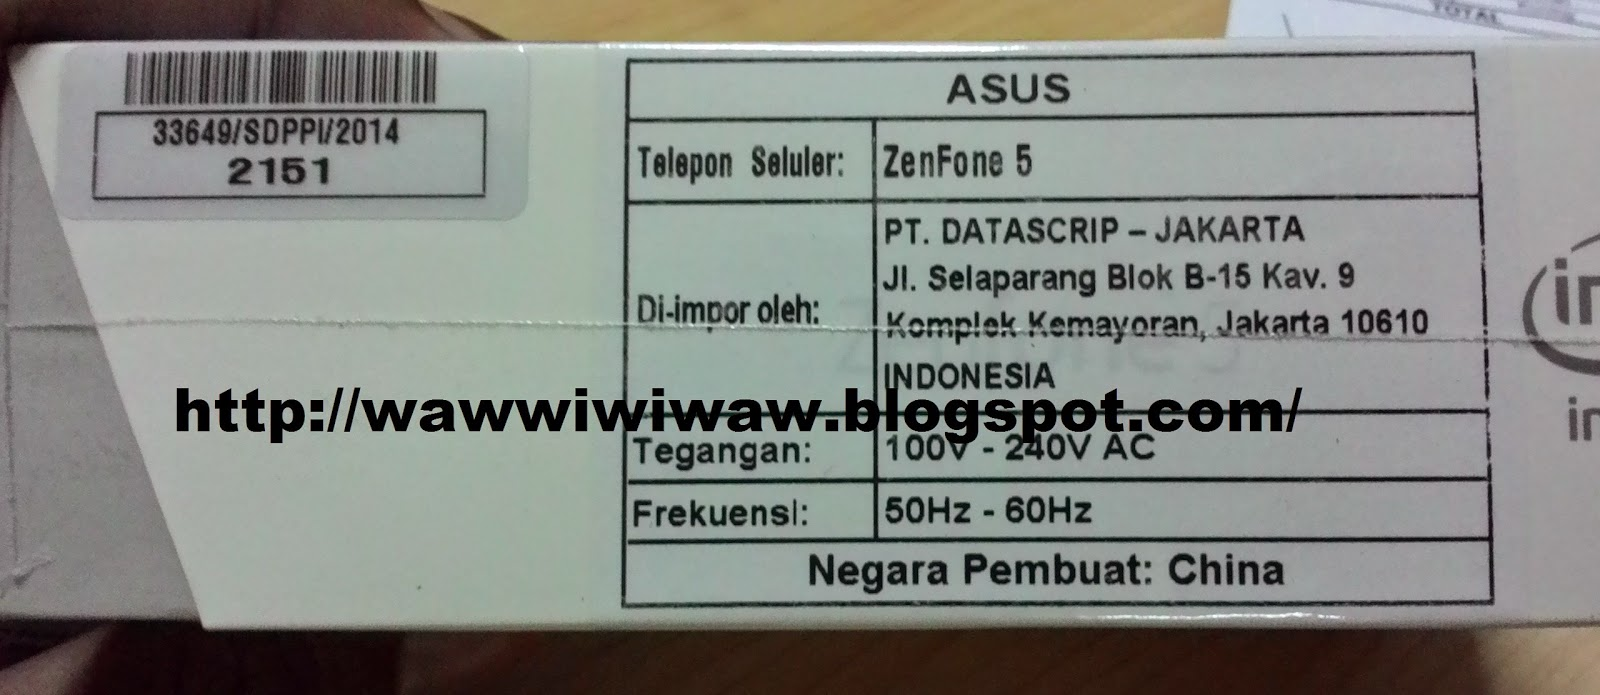 waw's land: Unboxing Zenfone 5 (by Lazada's packing)